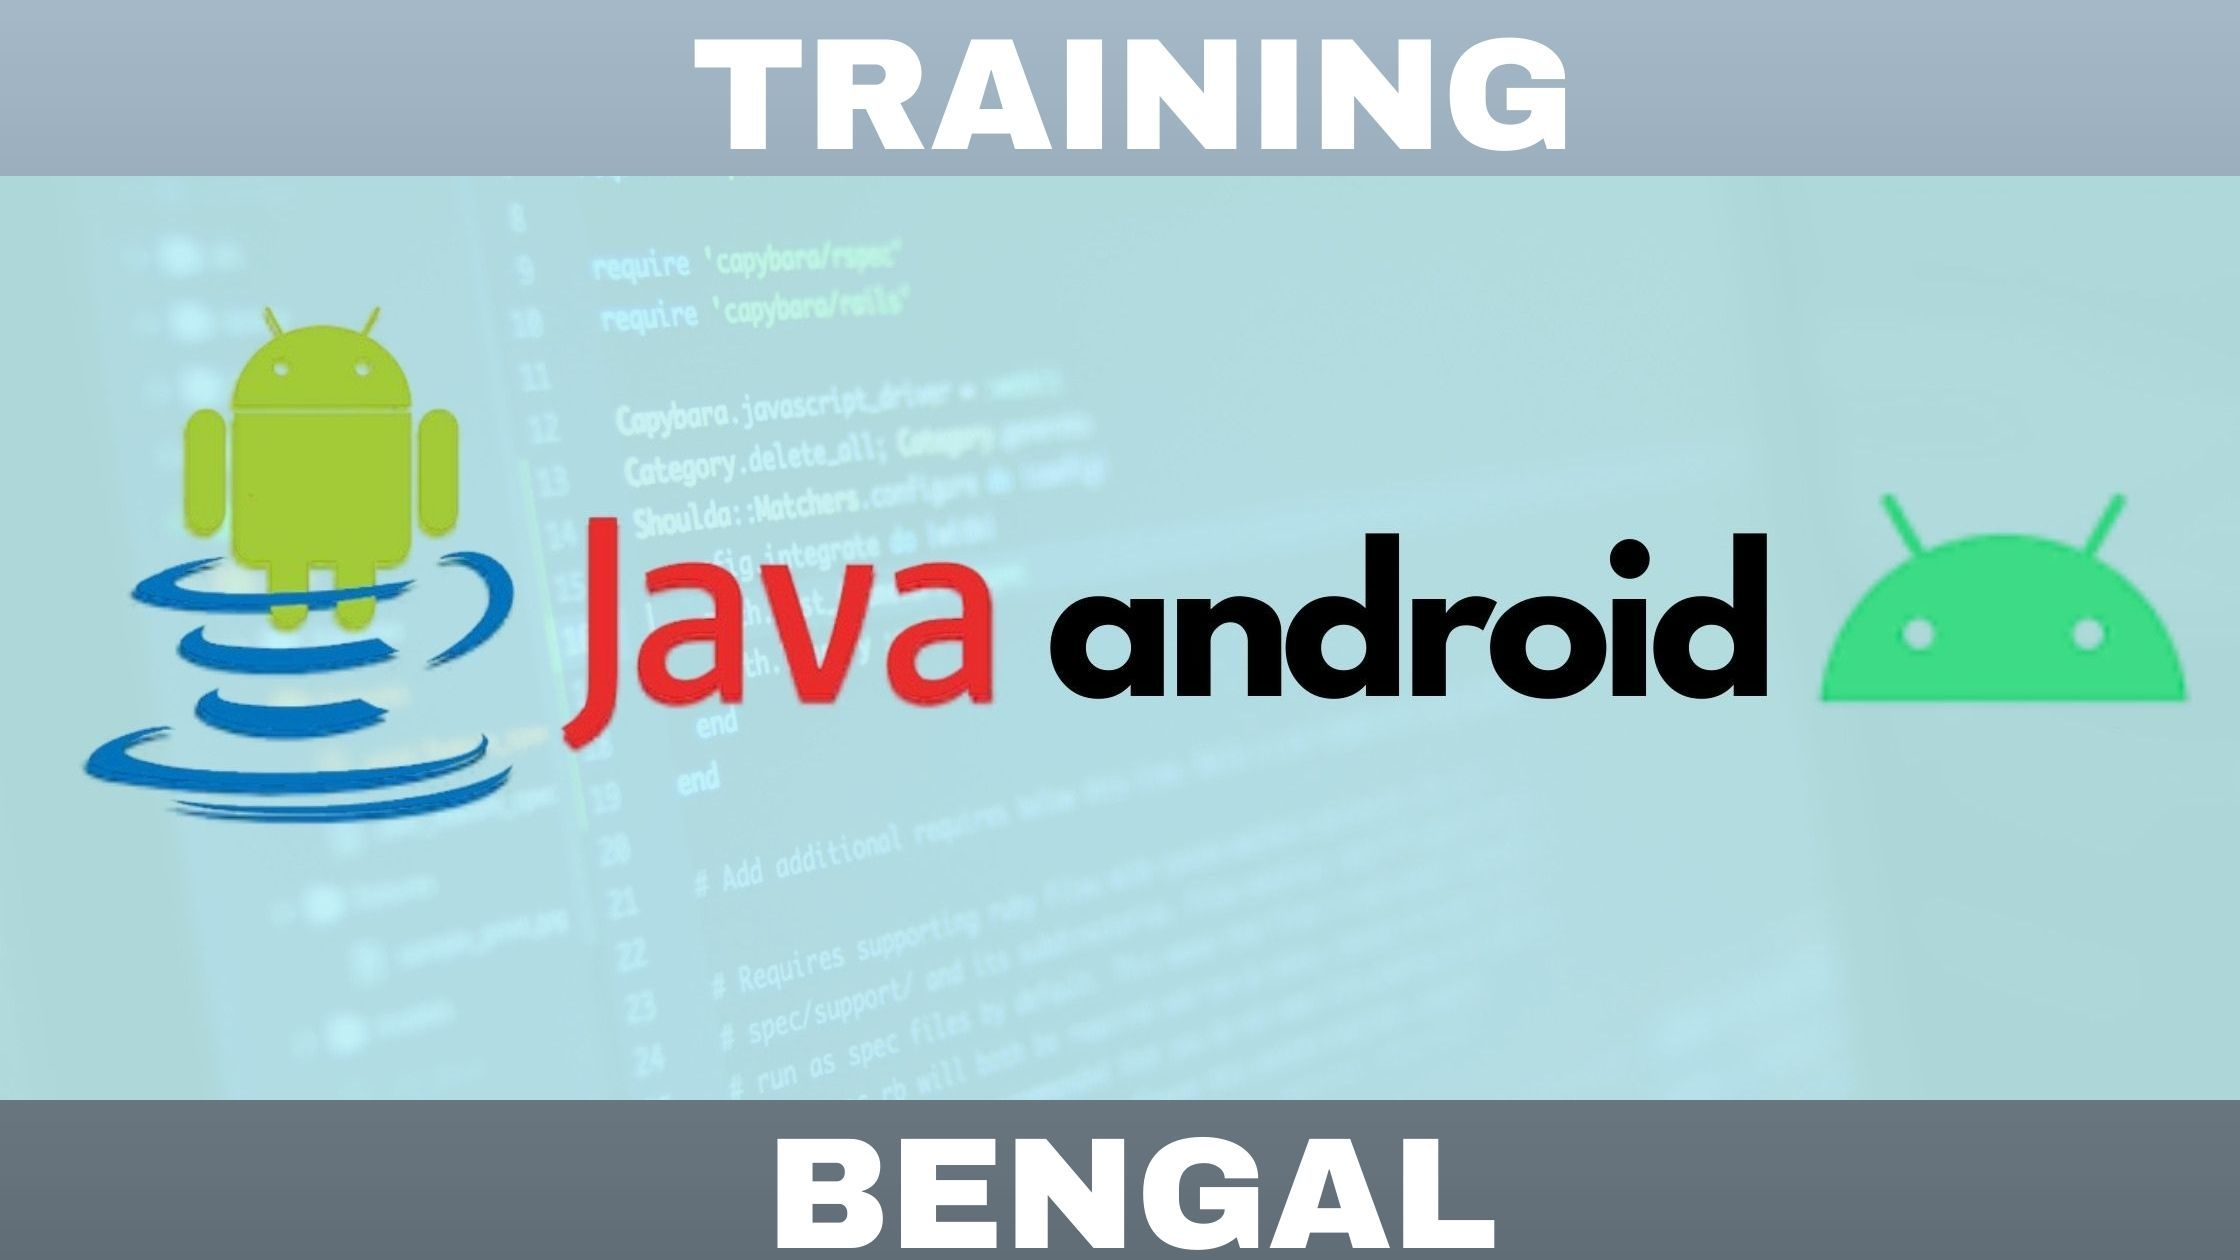 java_android_in_bengal-background.jpeg